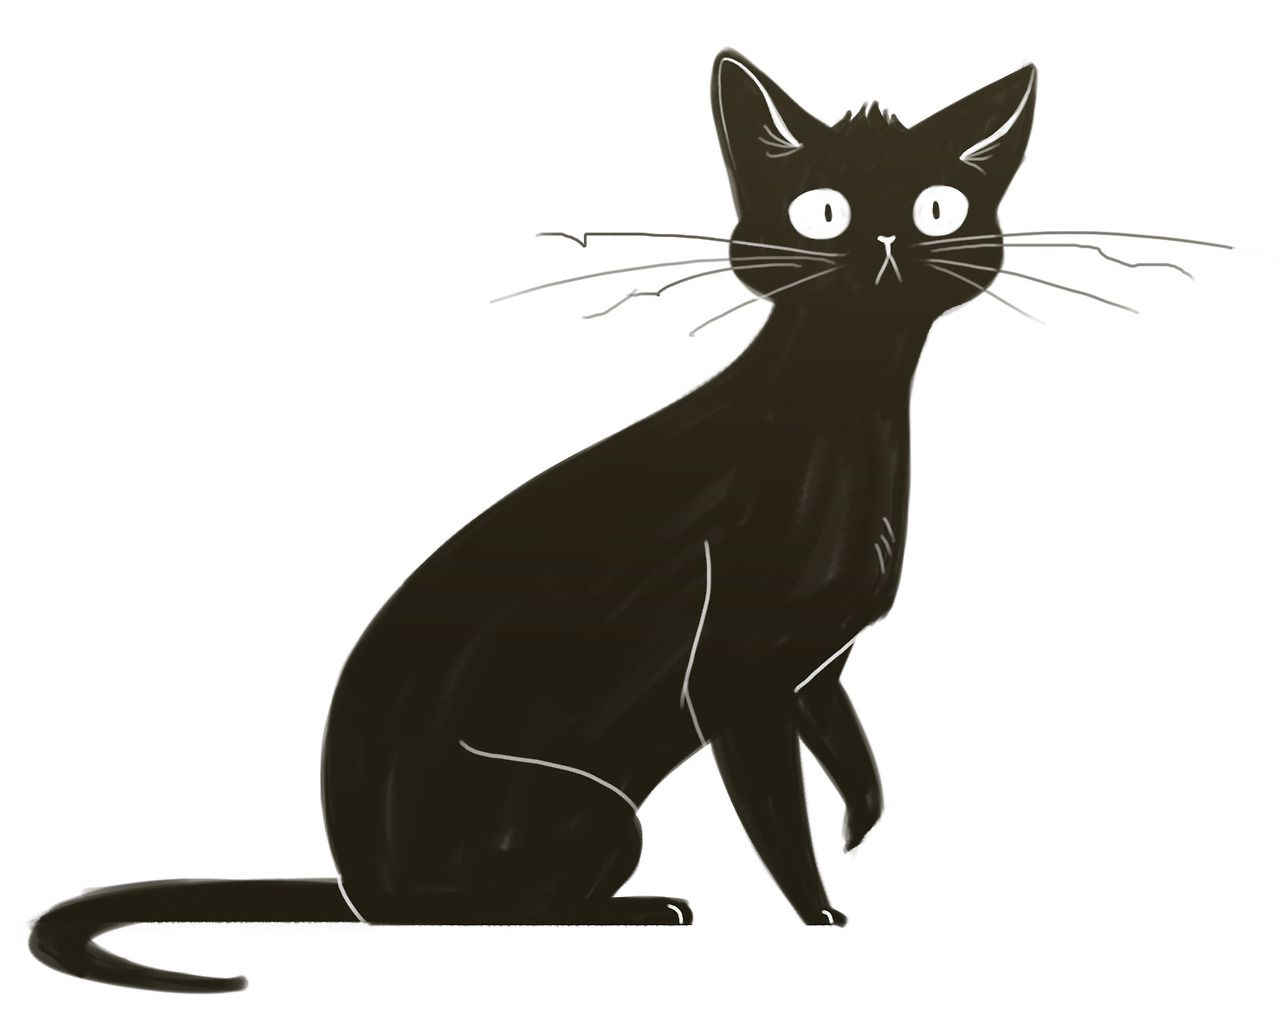 Found On Dailycatdrawings Tumblr Com Concept Cats Art And Photo